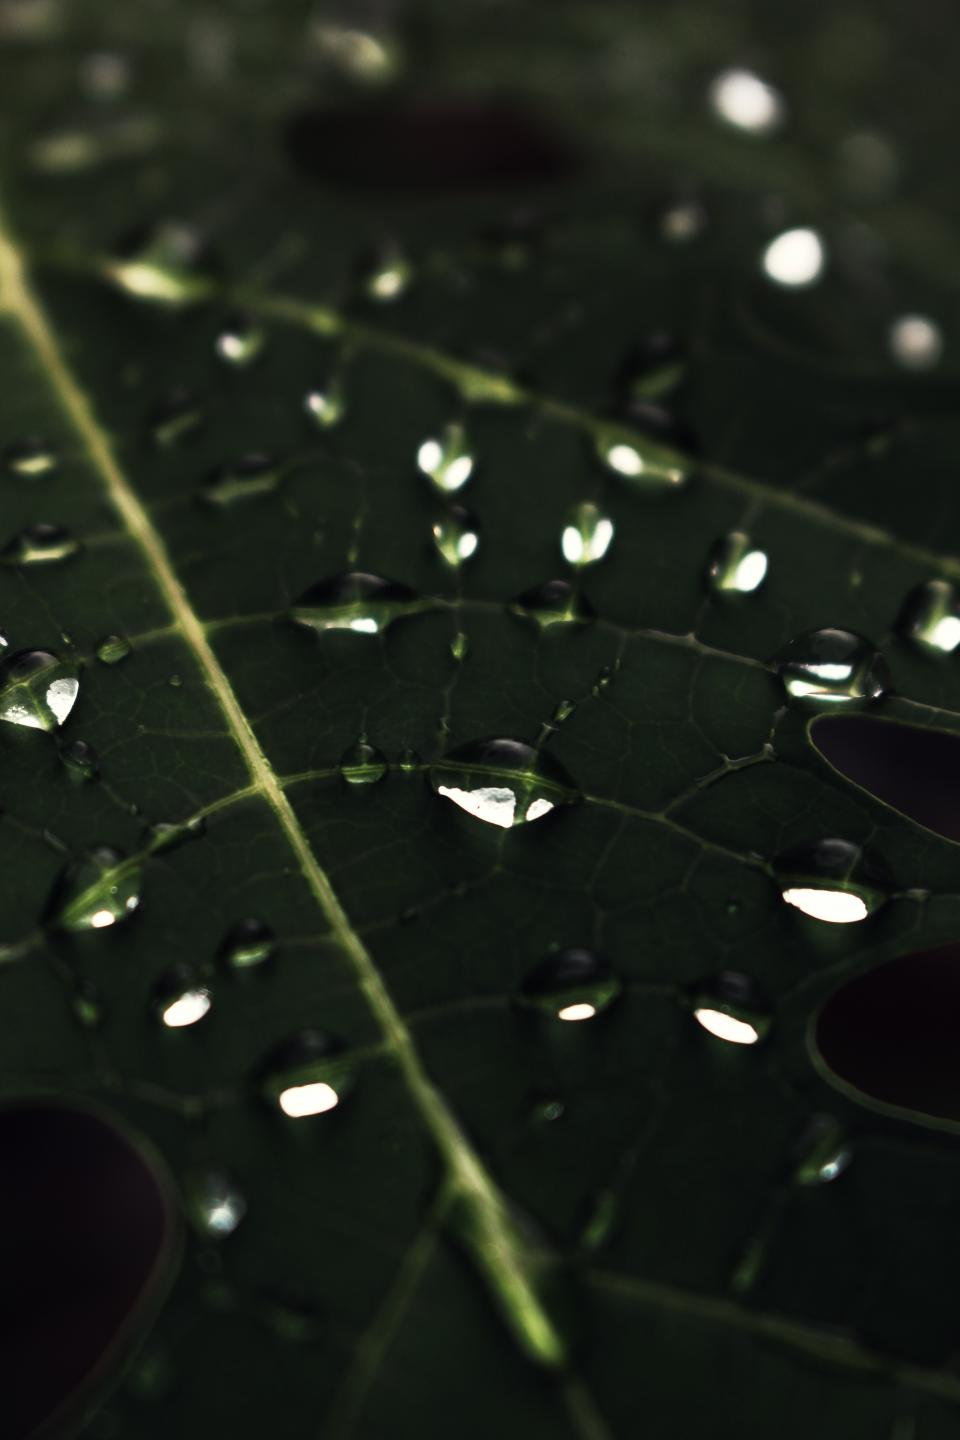 nature plants leaves veins rain water droplets macro still bokeh